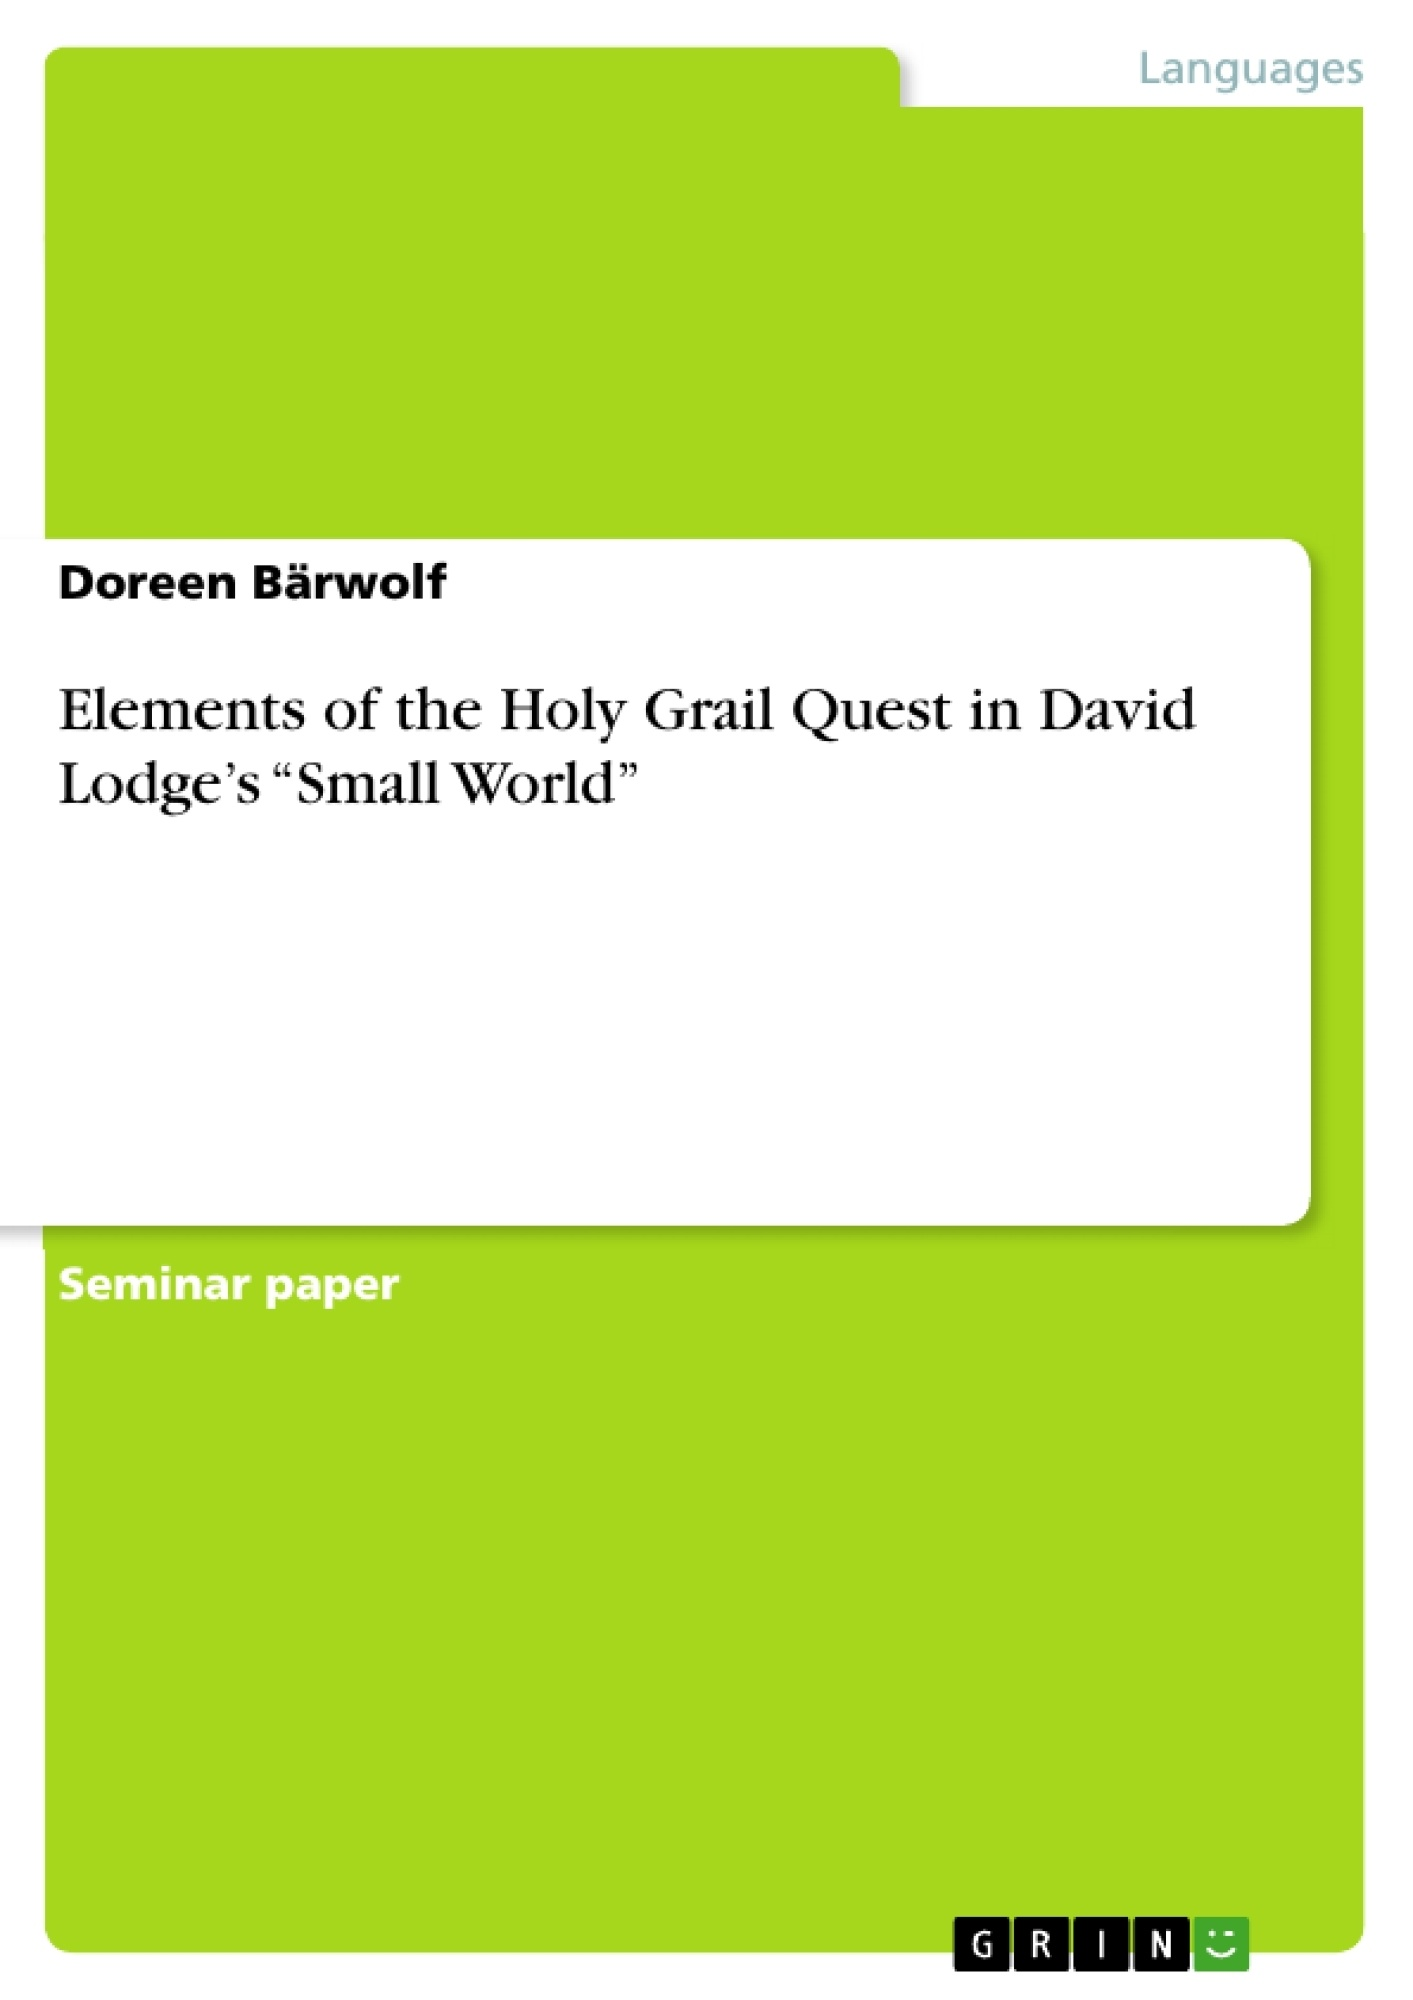 """Title: Elements of the Holy Grail Quest in David Lodge's """"Small World"""""""